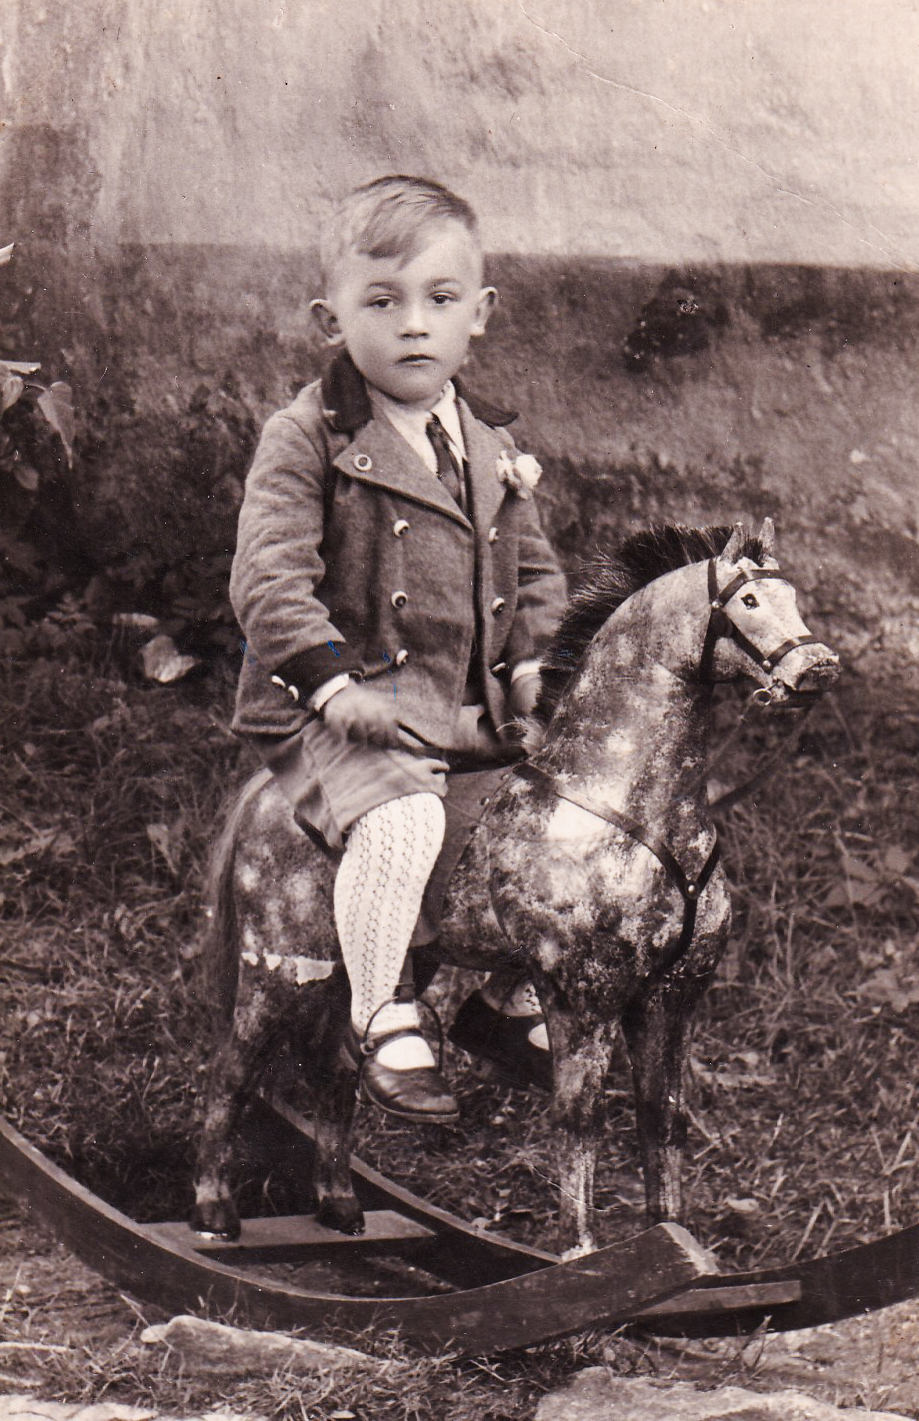 Emil Baierl as a child